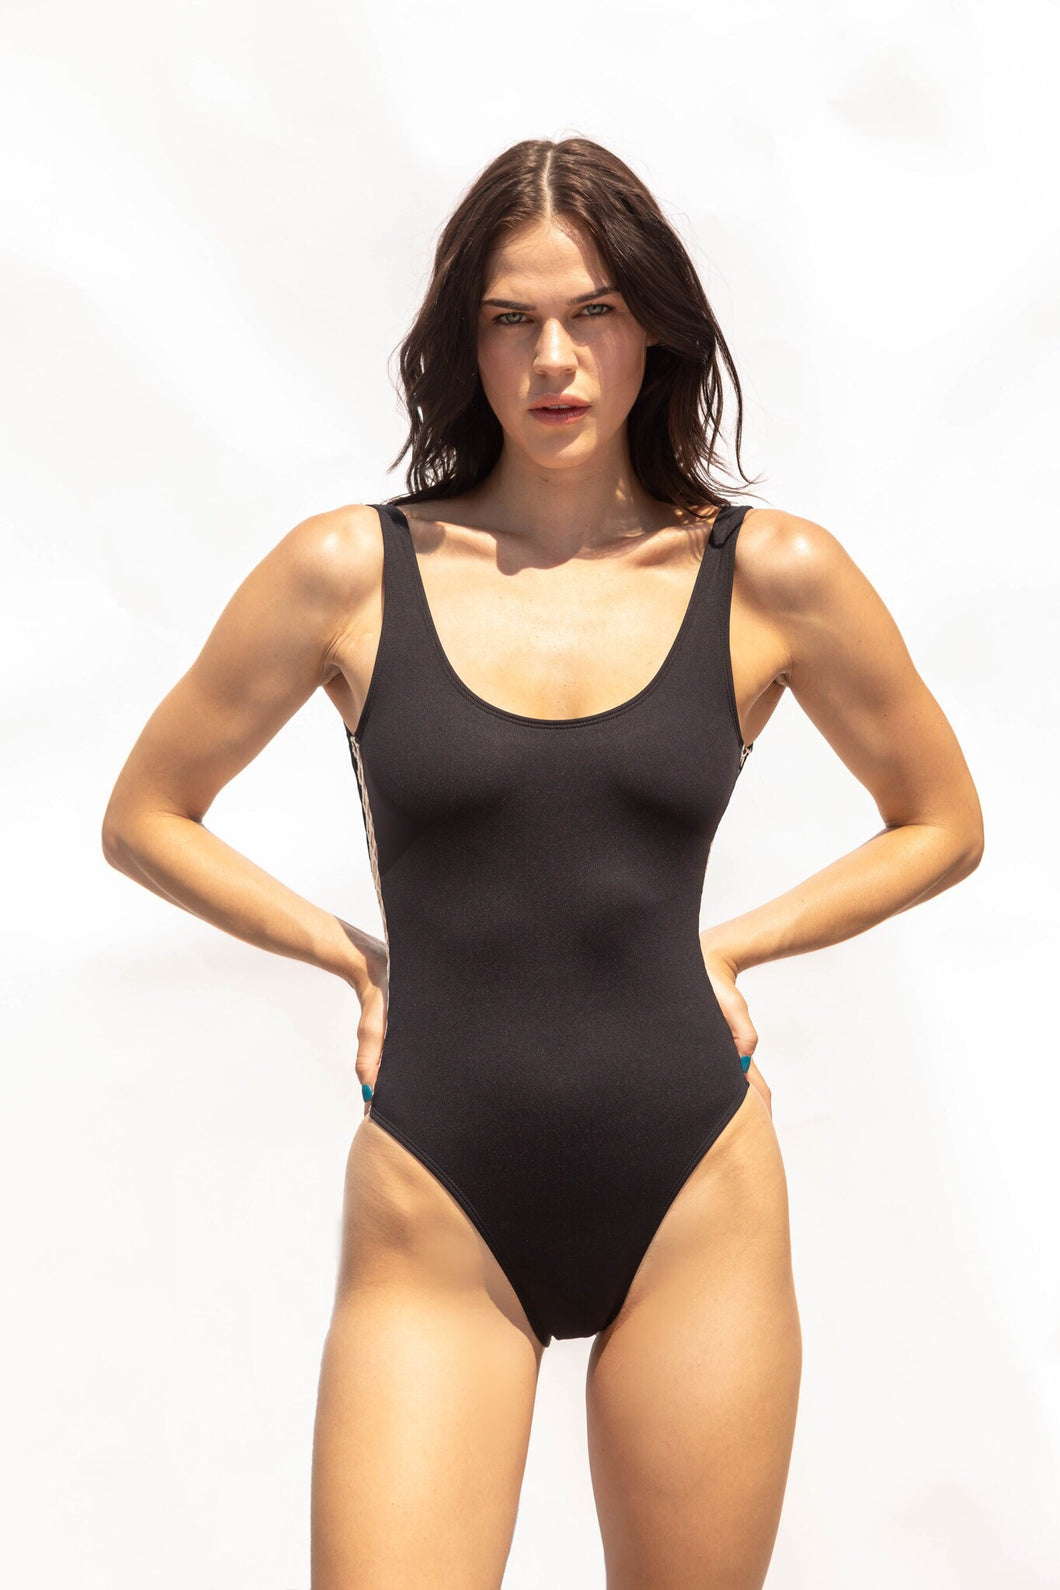 Black bathing suit. The most flattering one-piece swimsuit. High leg and Brazilian bottom cut.